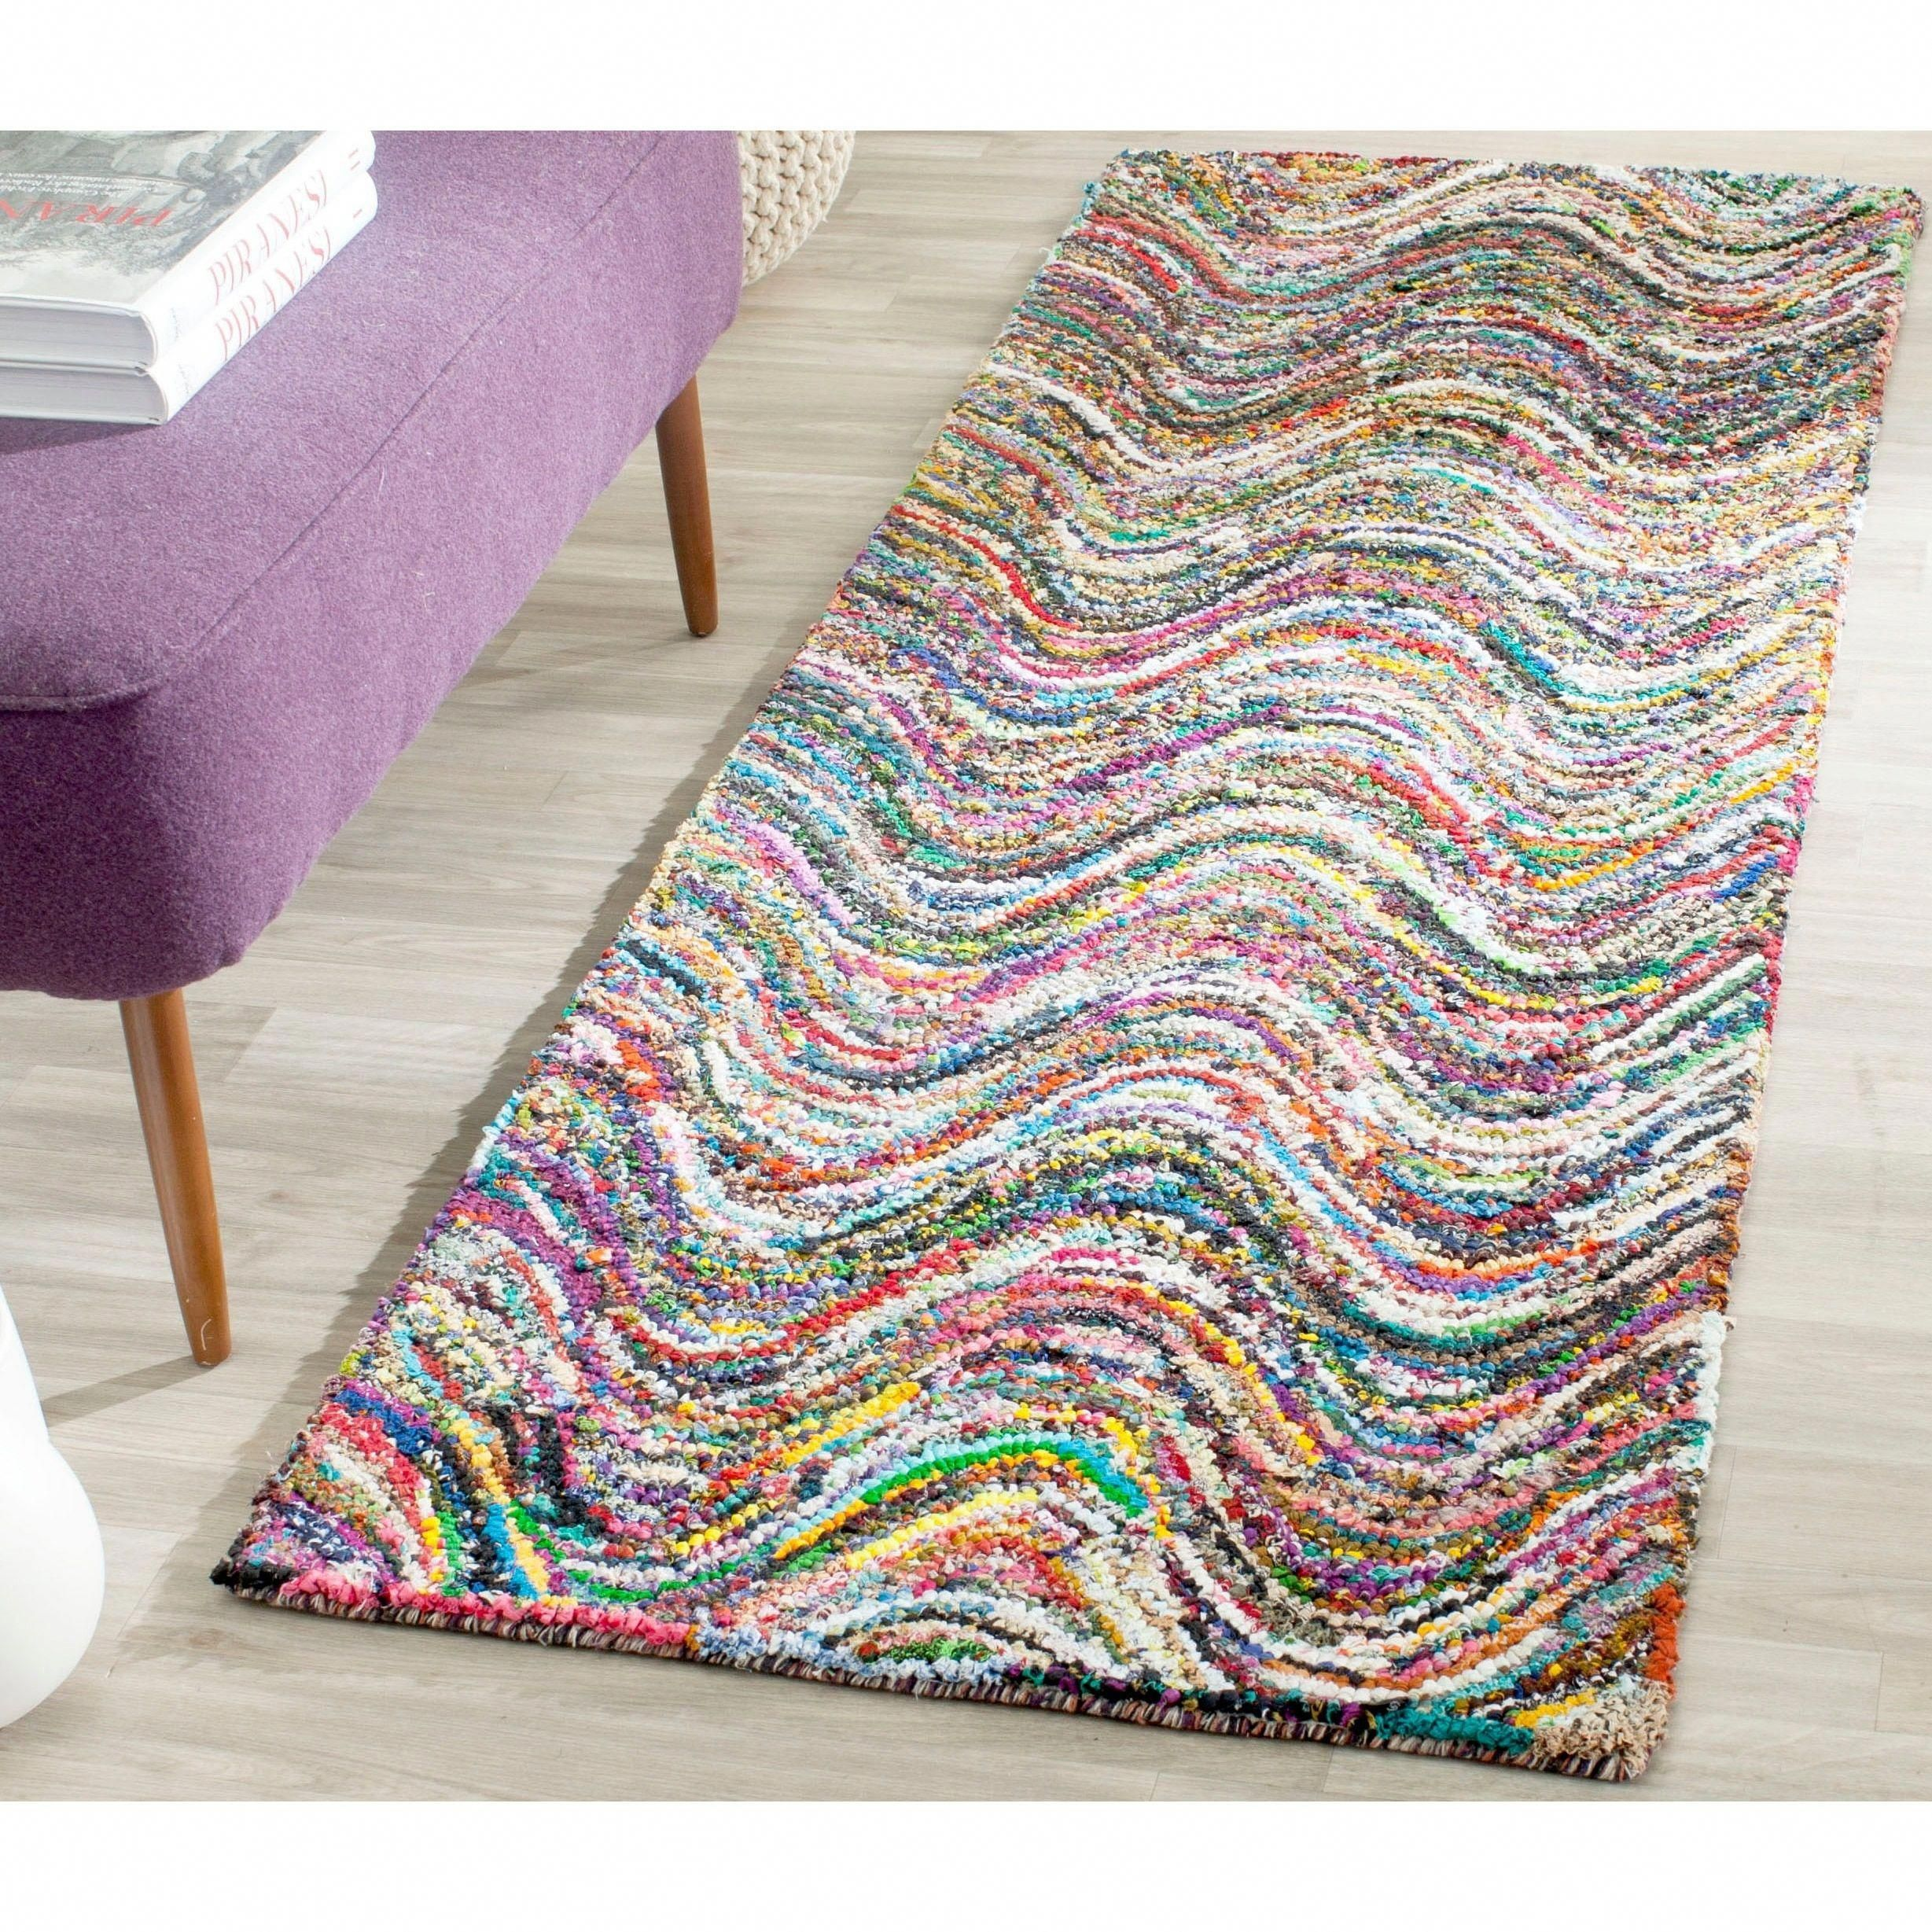 Carpet Runners By The Foot Lowes Carpetrunners300cmlong Refferal 2880347544 Runnerrugs Paisley Rug Rug Runner Cotton Rug